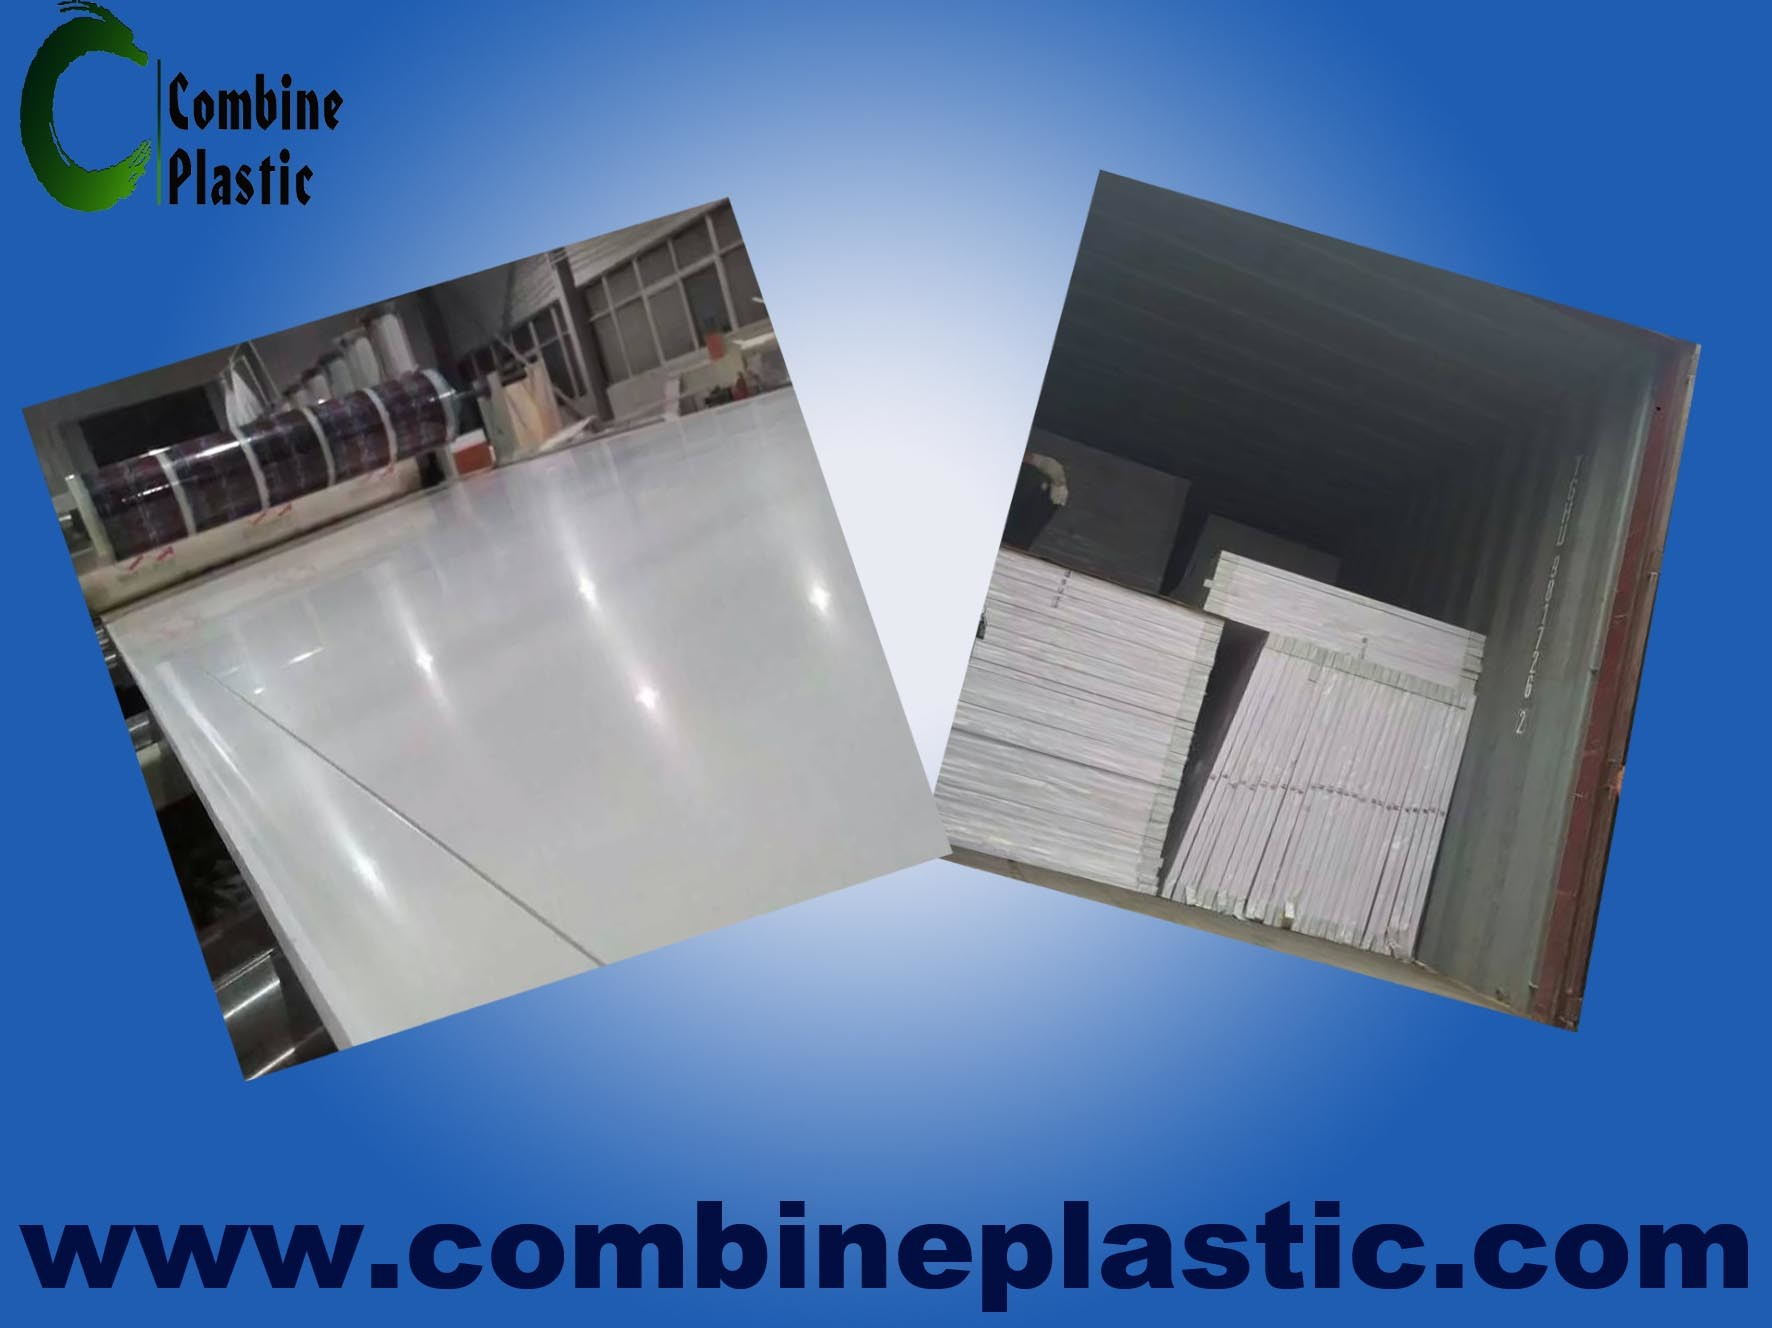 No.9th PVC foam board production line will come to combine plastic in May 2016